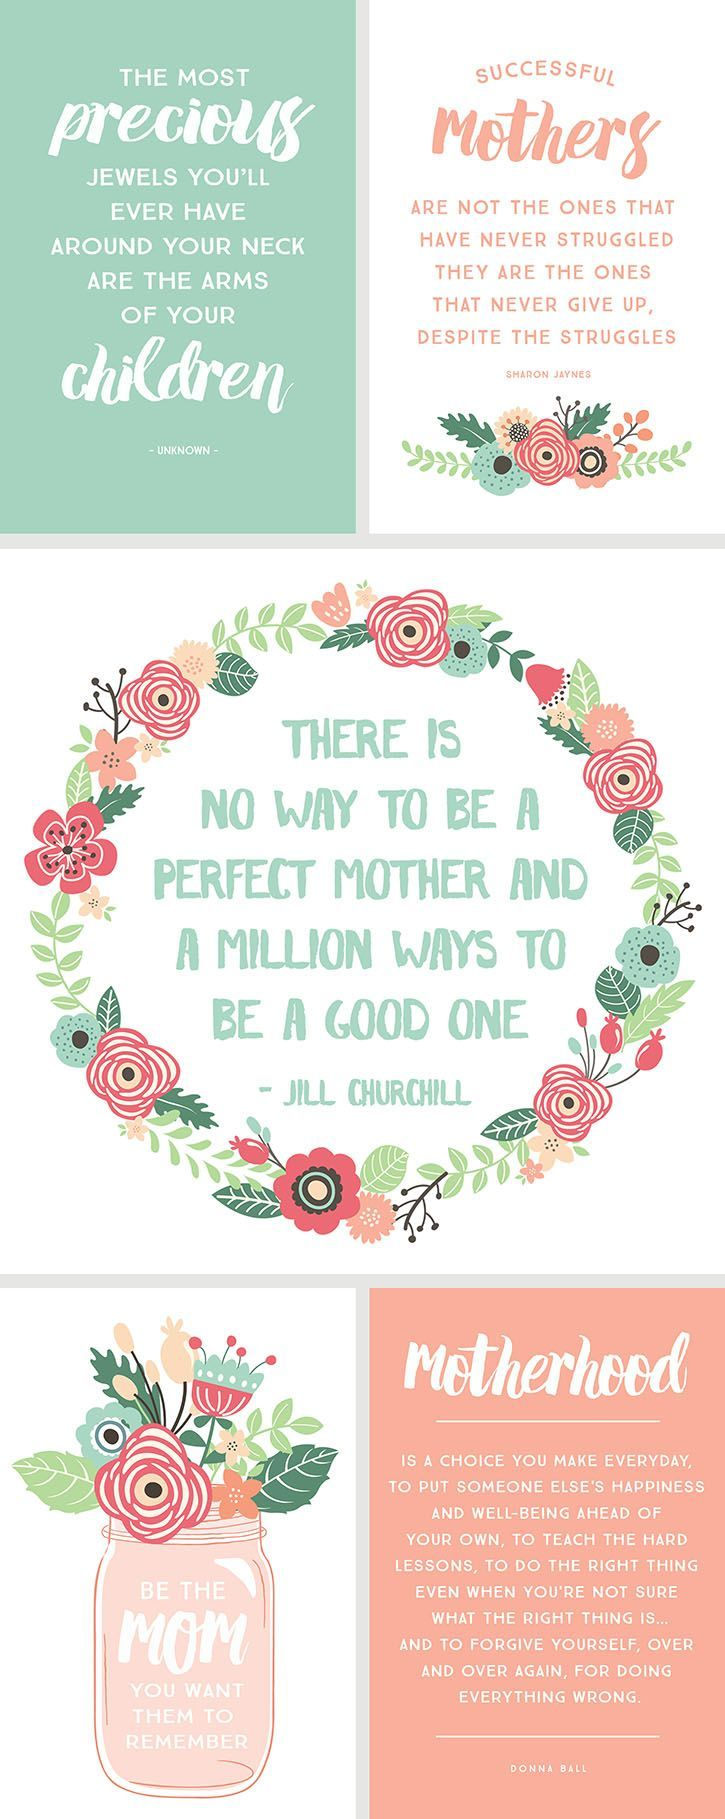 17 best quotes for mothers day on pinterest mothers day quotes quote for mother and quotes. Black Bedroom Furniture Sets. Home Design Ideas